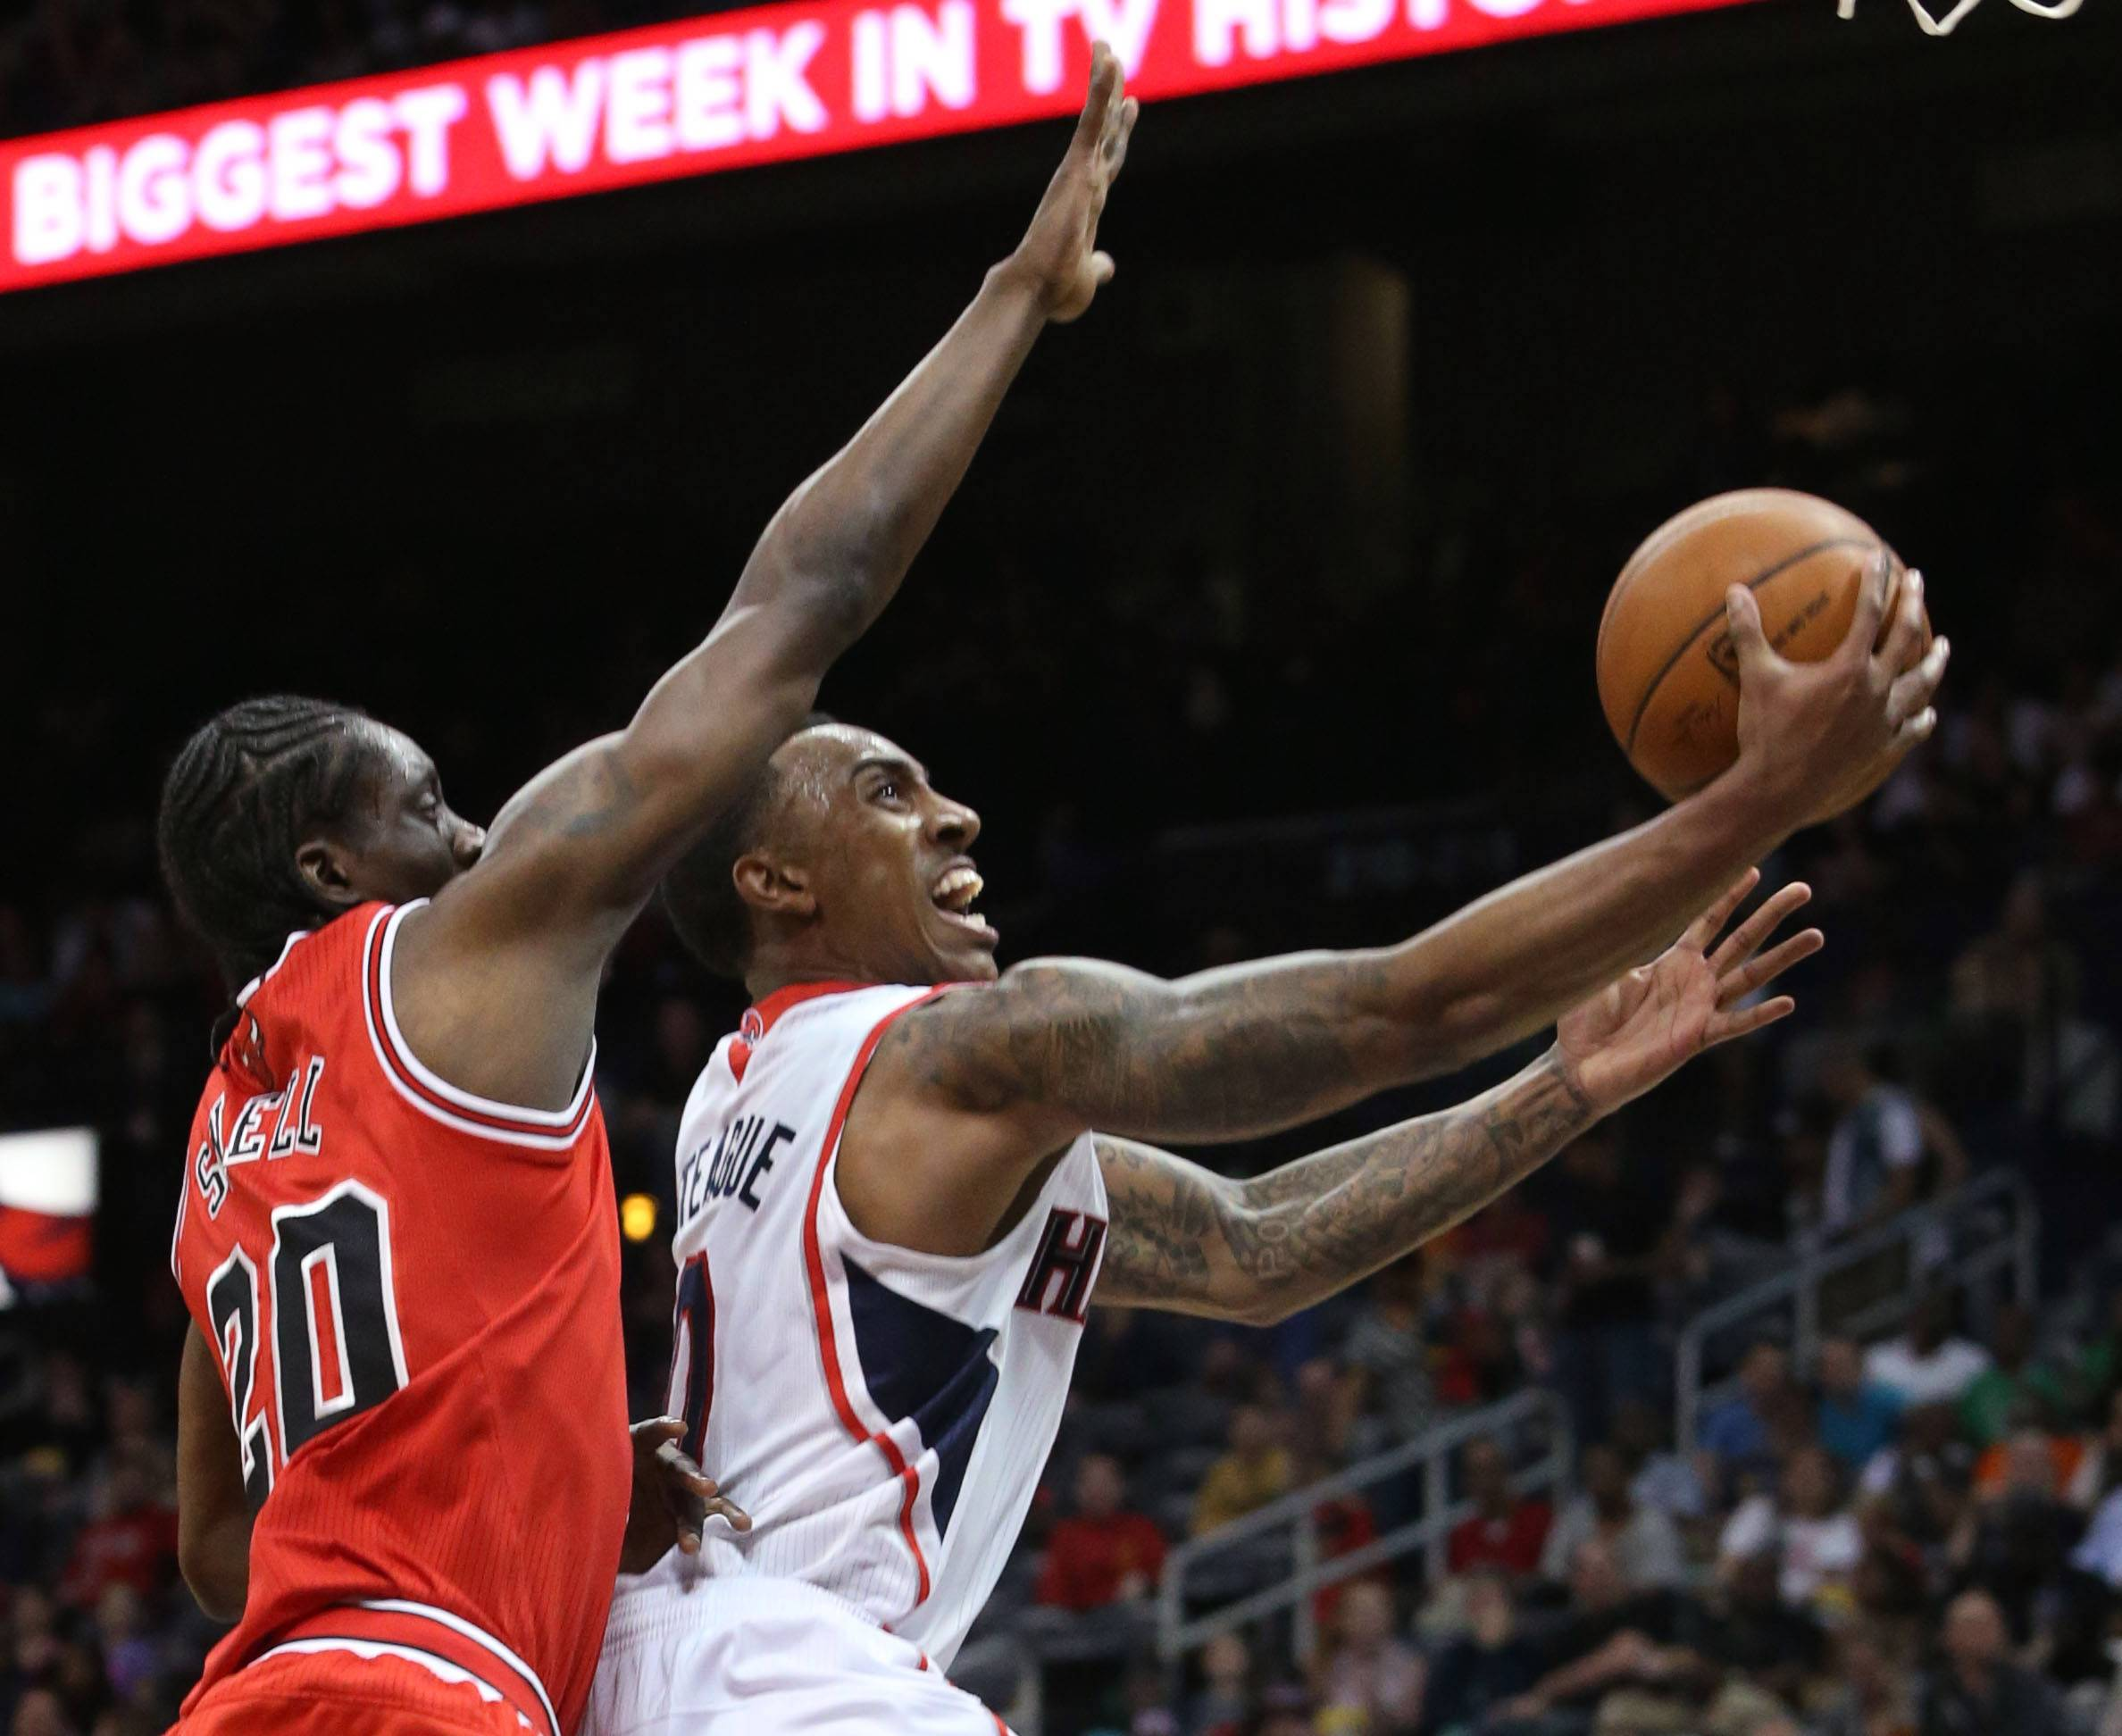 Atlanta Hawks guard Jeff Teague (0) shoots in front of Chicago Bulls guard Tony Snell (20) during the first half of an NBA basketball game Wednesday in Atlanta.